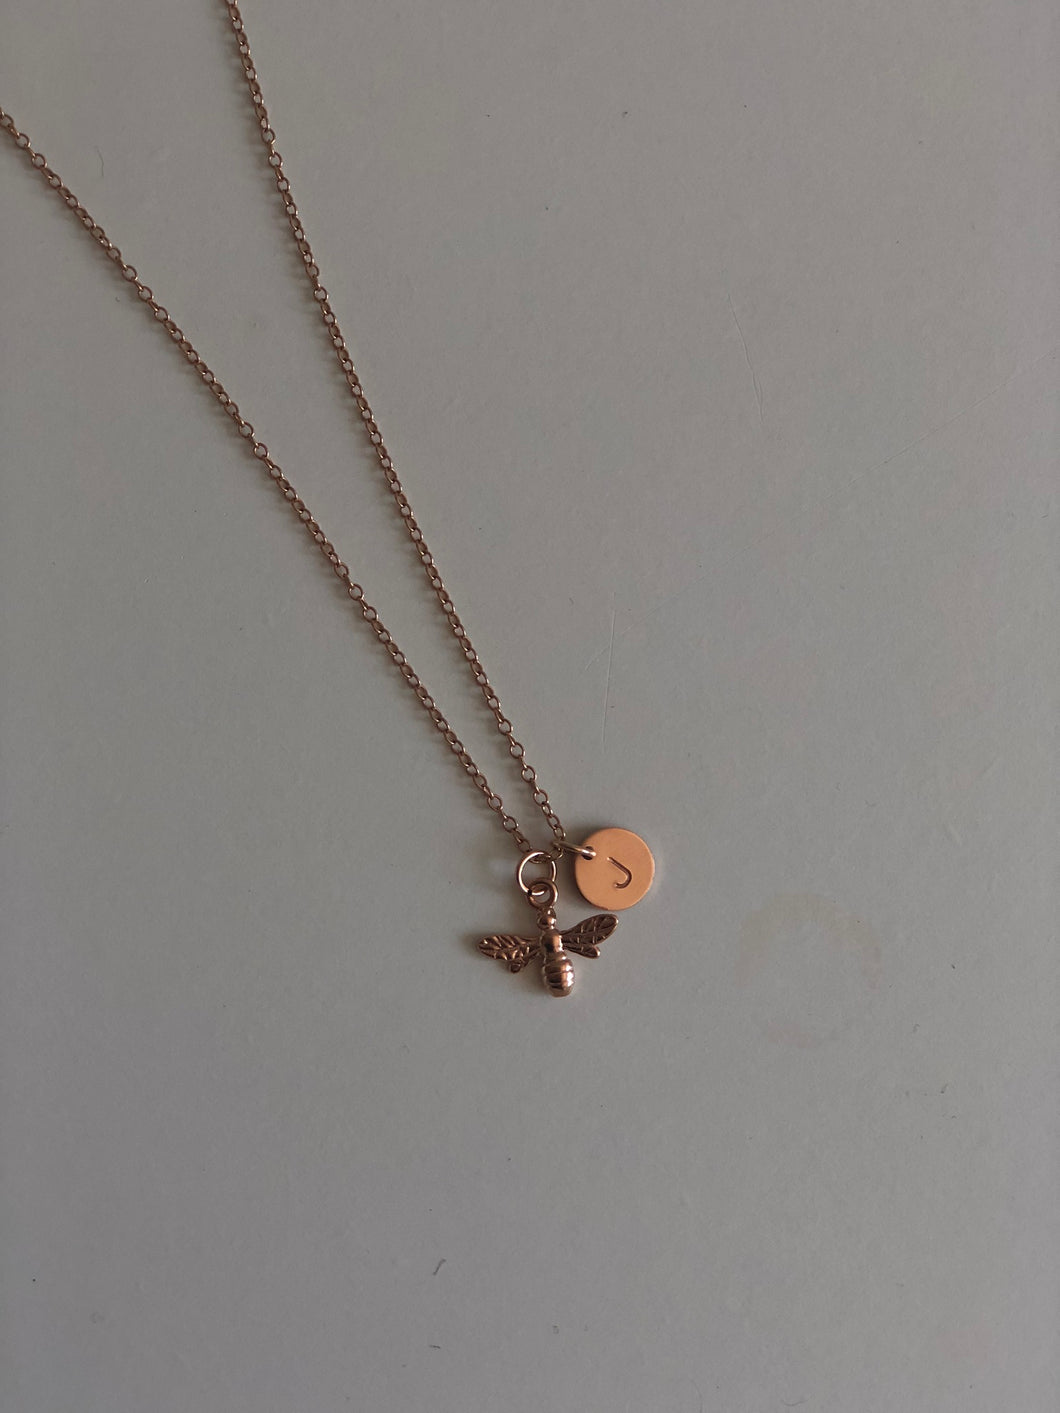 Bumble Bee Necklace - Rose Gold or Silver